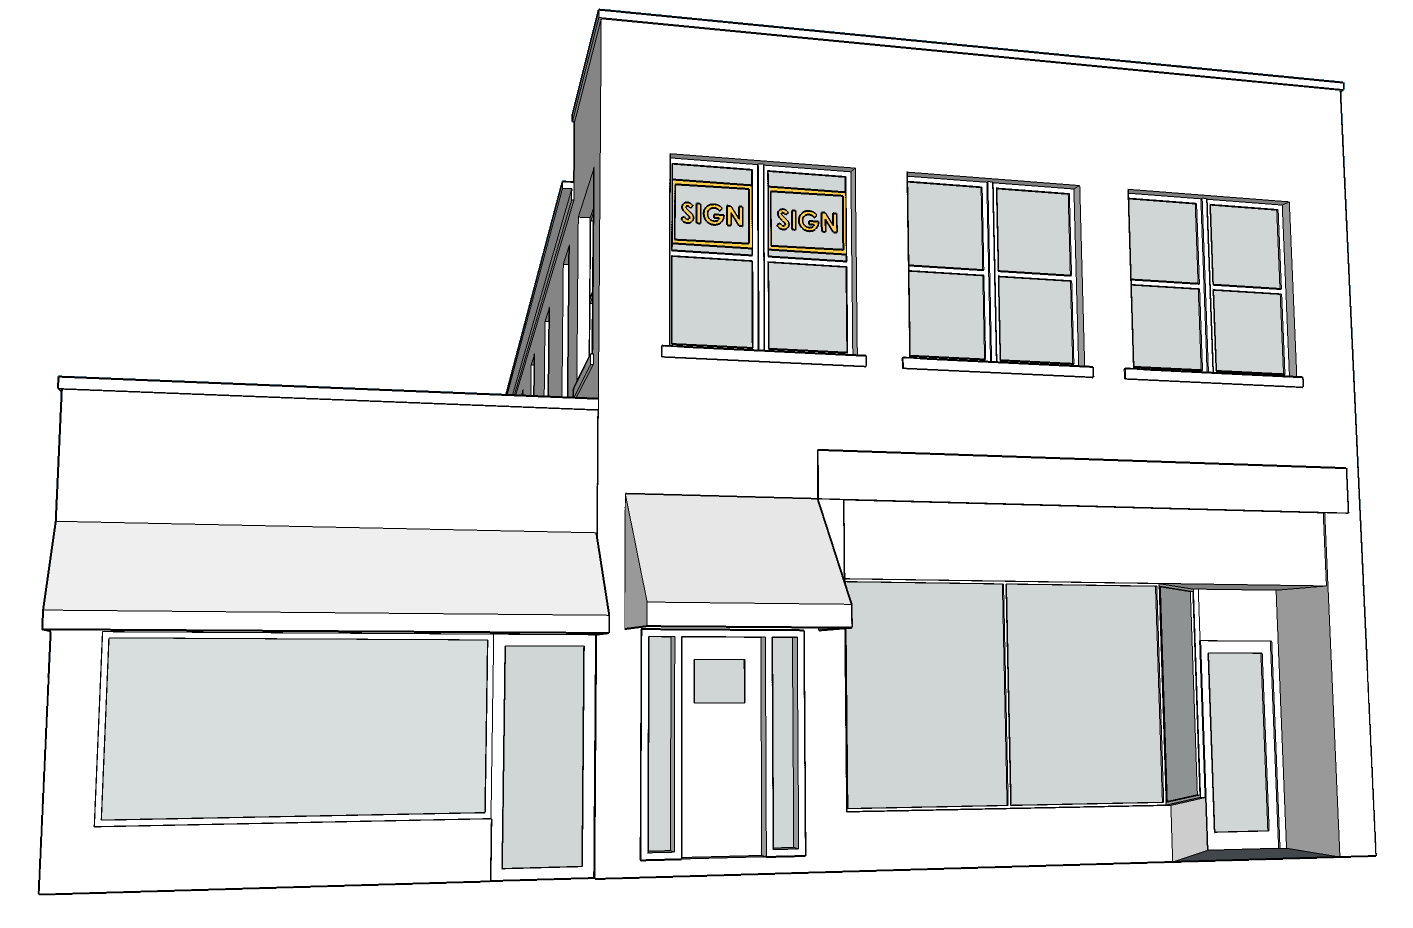 WINDOW SIGN    - Cannot be larger than 16 SF.   - Cannot be larger than 5% of the business's facade area.   - Neon signs cannot be larger than 6 SF.   - Font cannot be taller than 8 in.   - Only ONE on the second story per building.